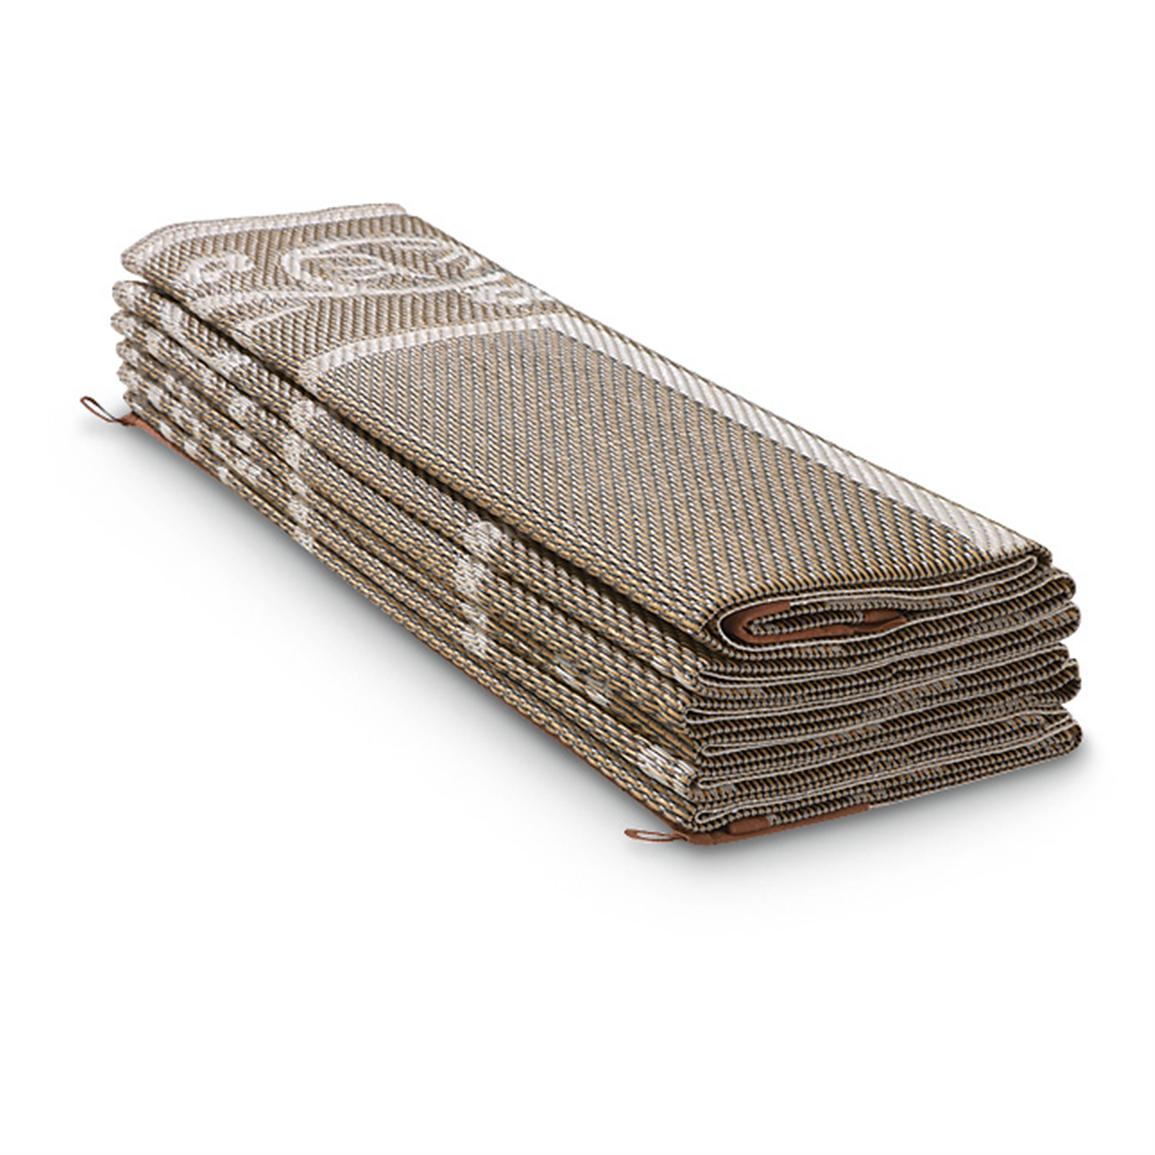 l tulum patio carpet option mats is wonderful outside co outdoor a carpets smsender for